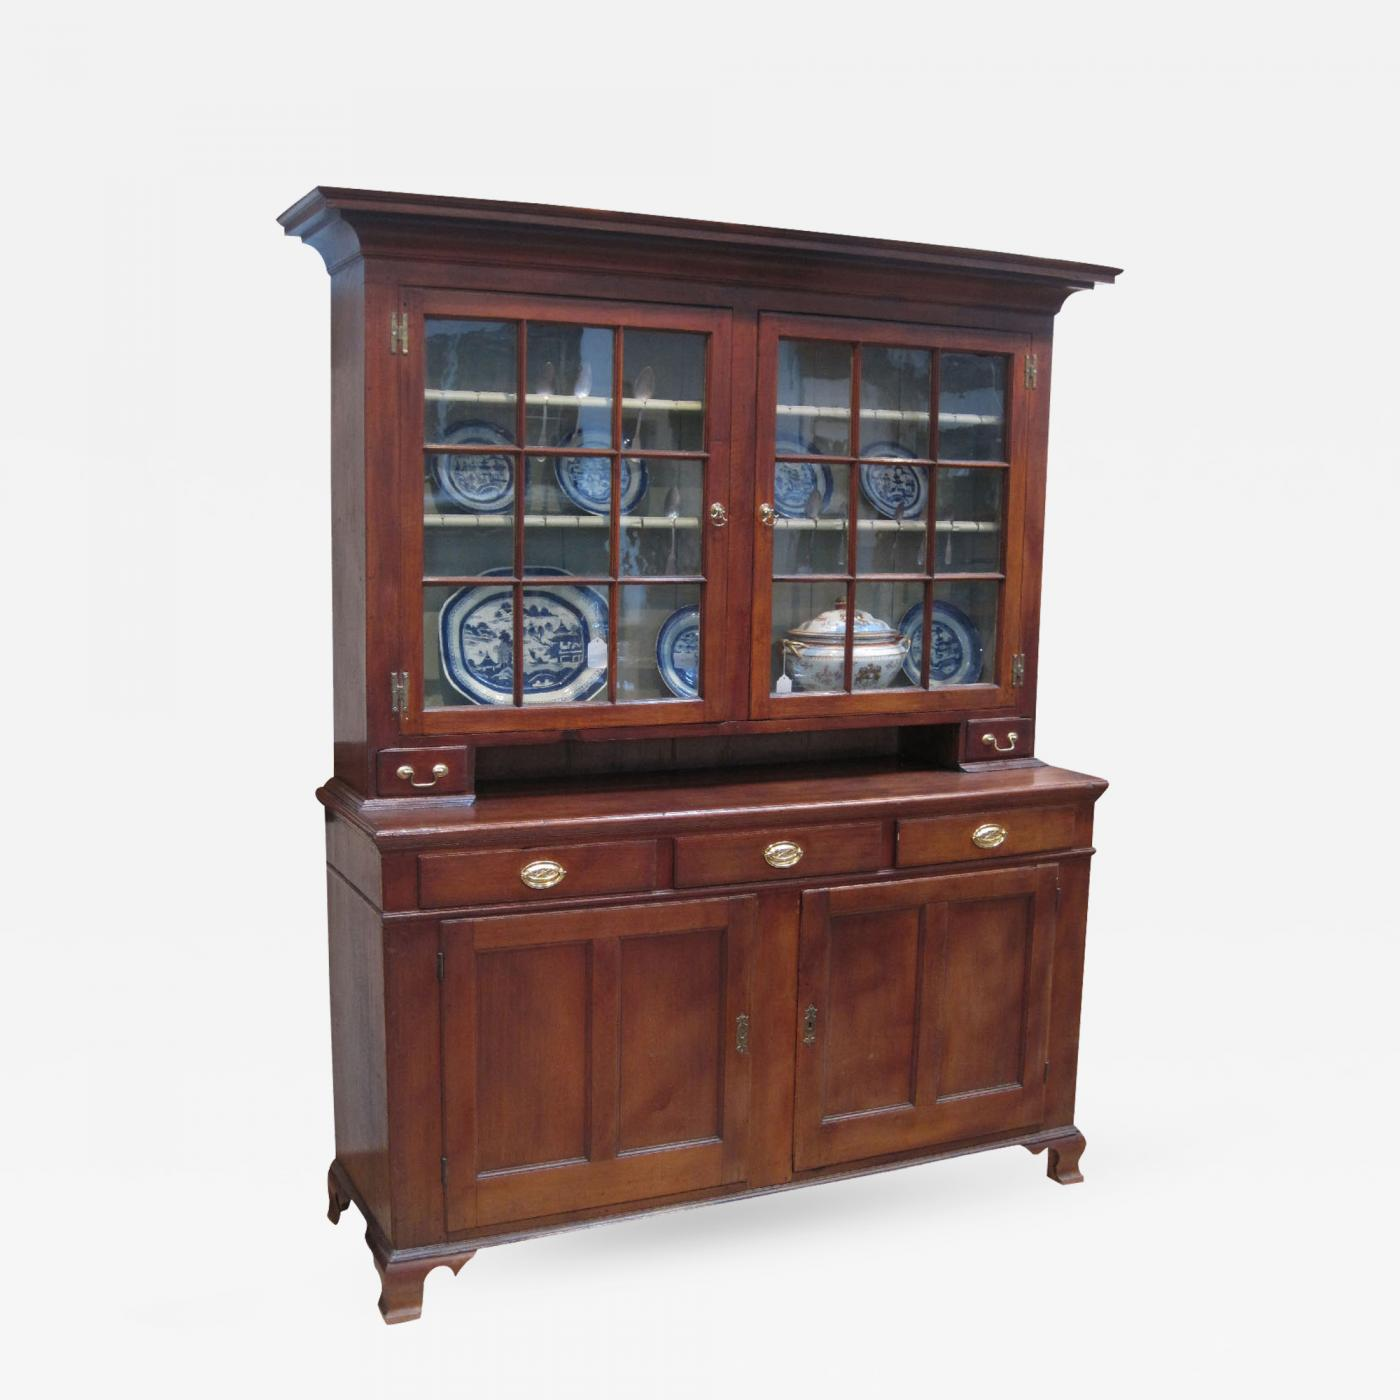 Listings / Furniture / Case Pieces / Cabinets · Pennsylvania Dutch Cupboard